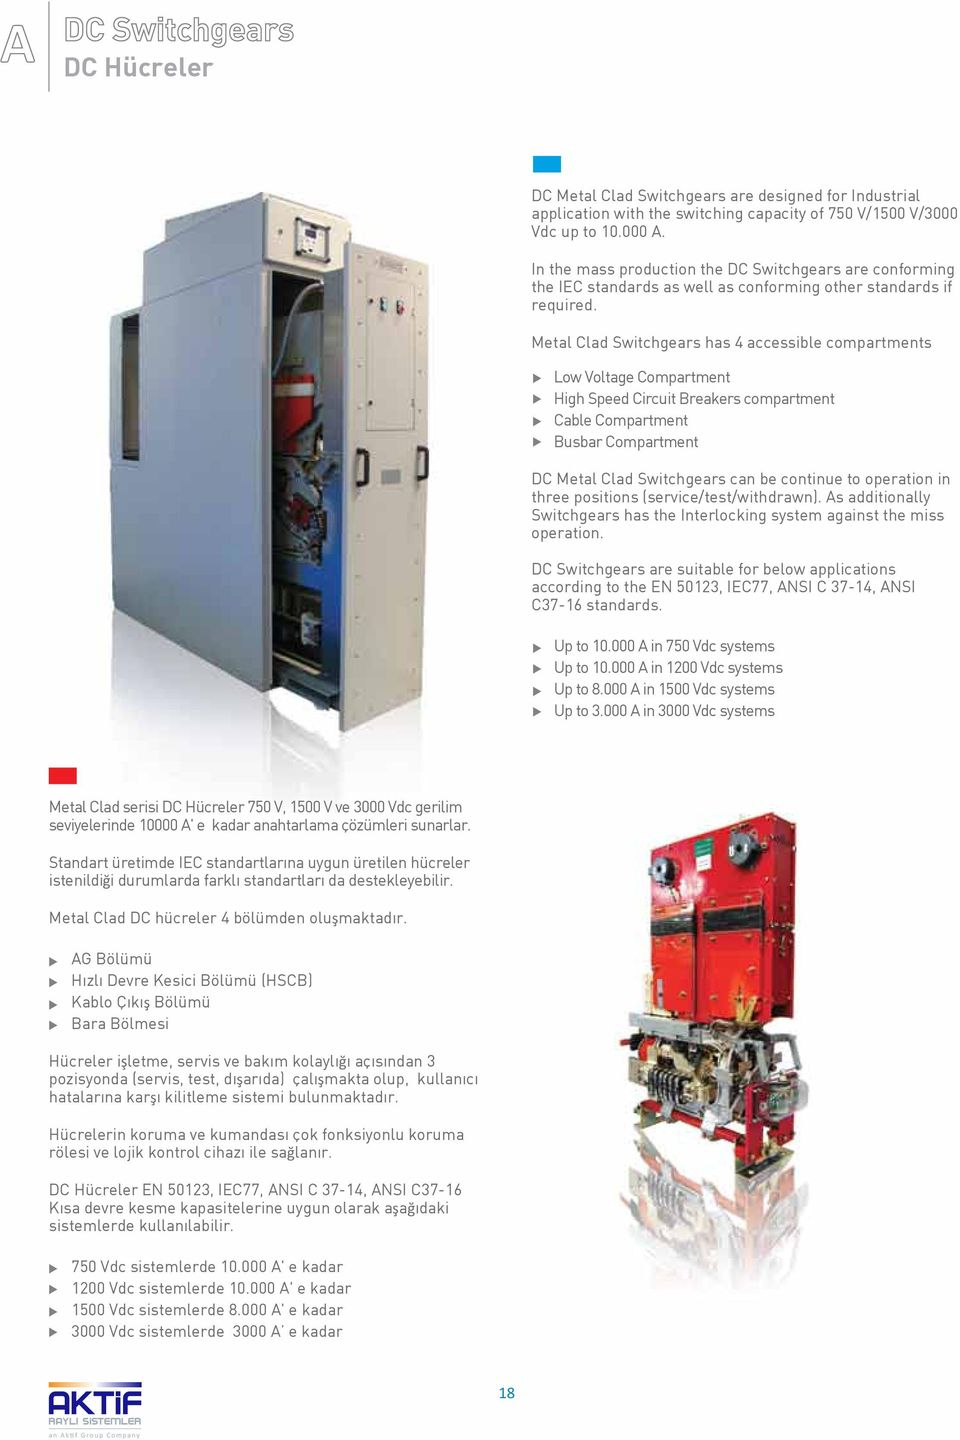 Metal Clad Switchgears has 4 accessible compartments Low Voltage Compartment High Speed Circuit Breakers compartment Cable Compartment Busbar Compartment DC Metal Clad Switchgears can be continue to